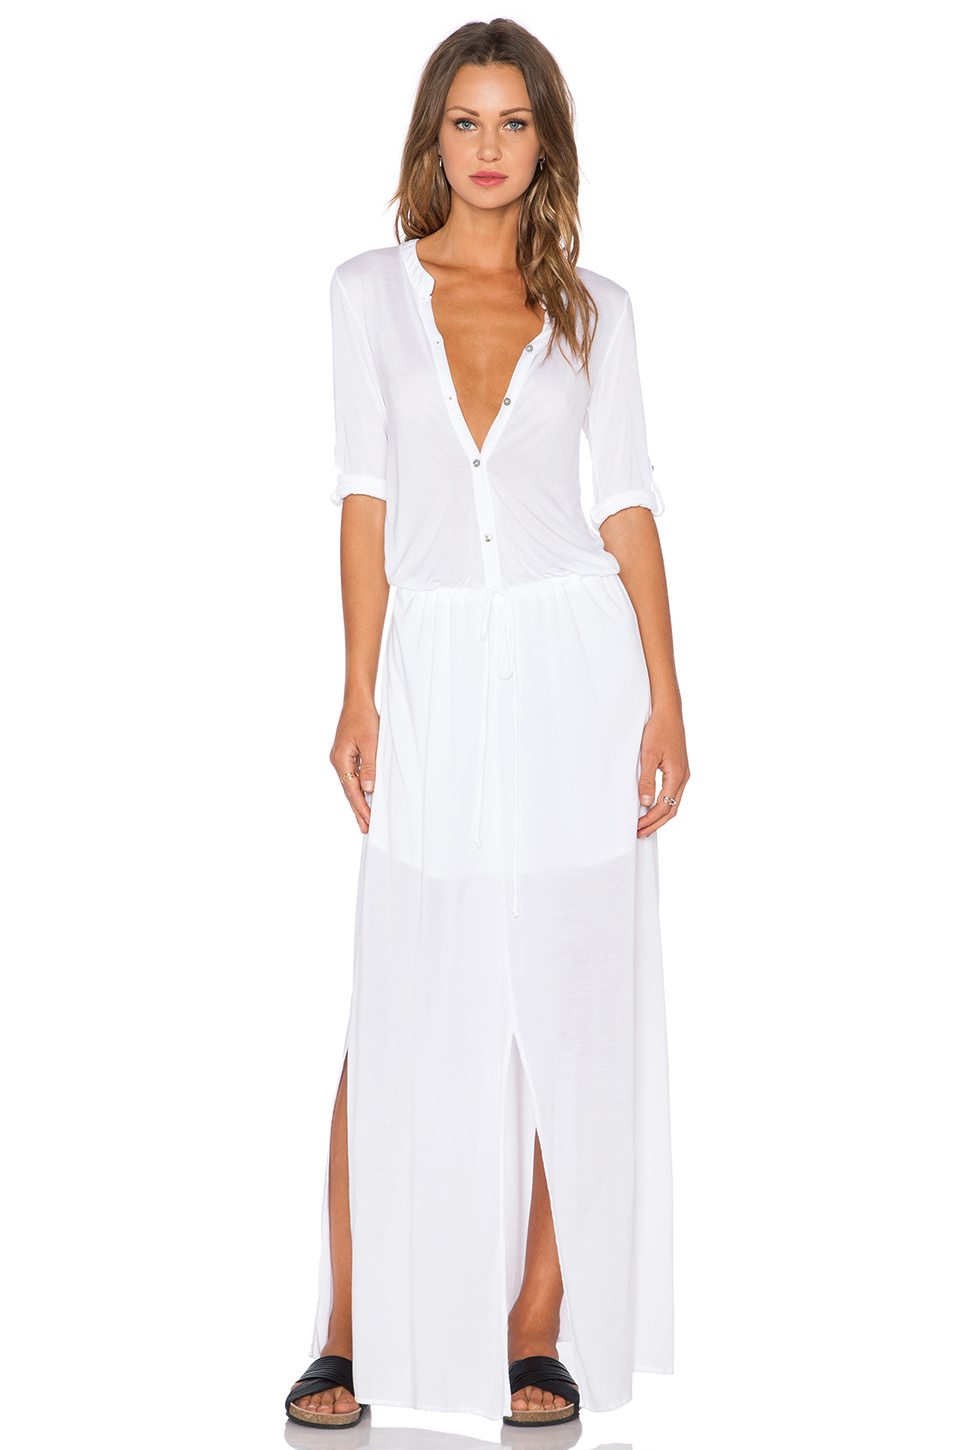 Michael stars 3 4 sleeve maxi shirtdress in white lyst for Michael stars t shirts on sale